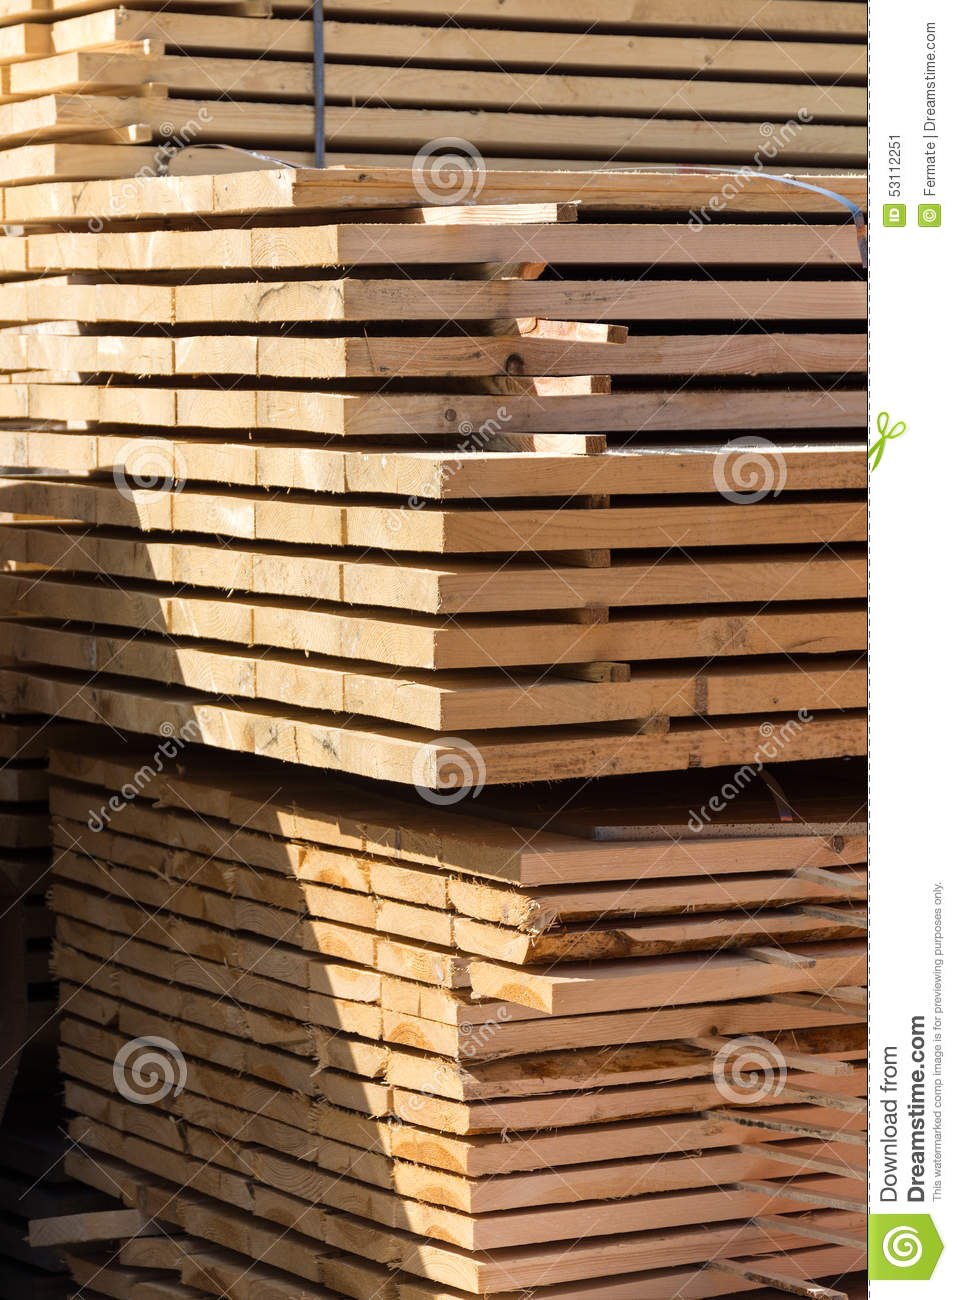 Need edged boards and beams for construction 9